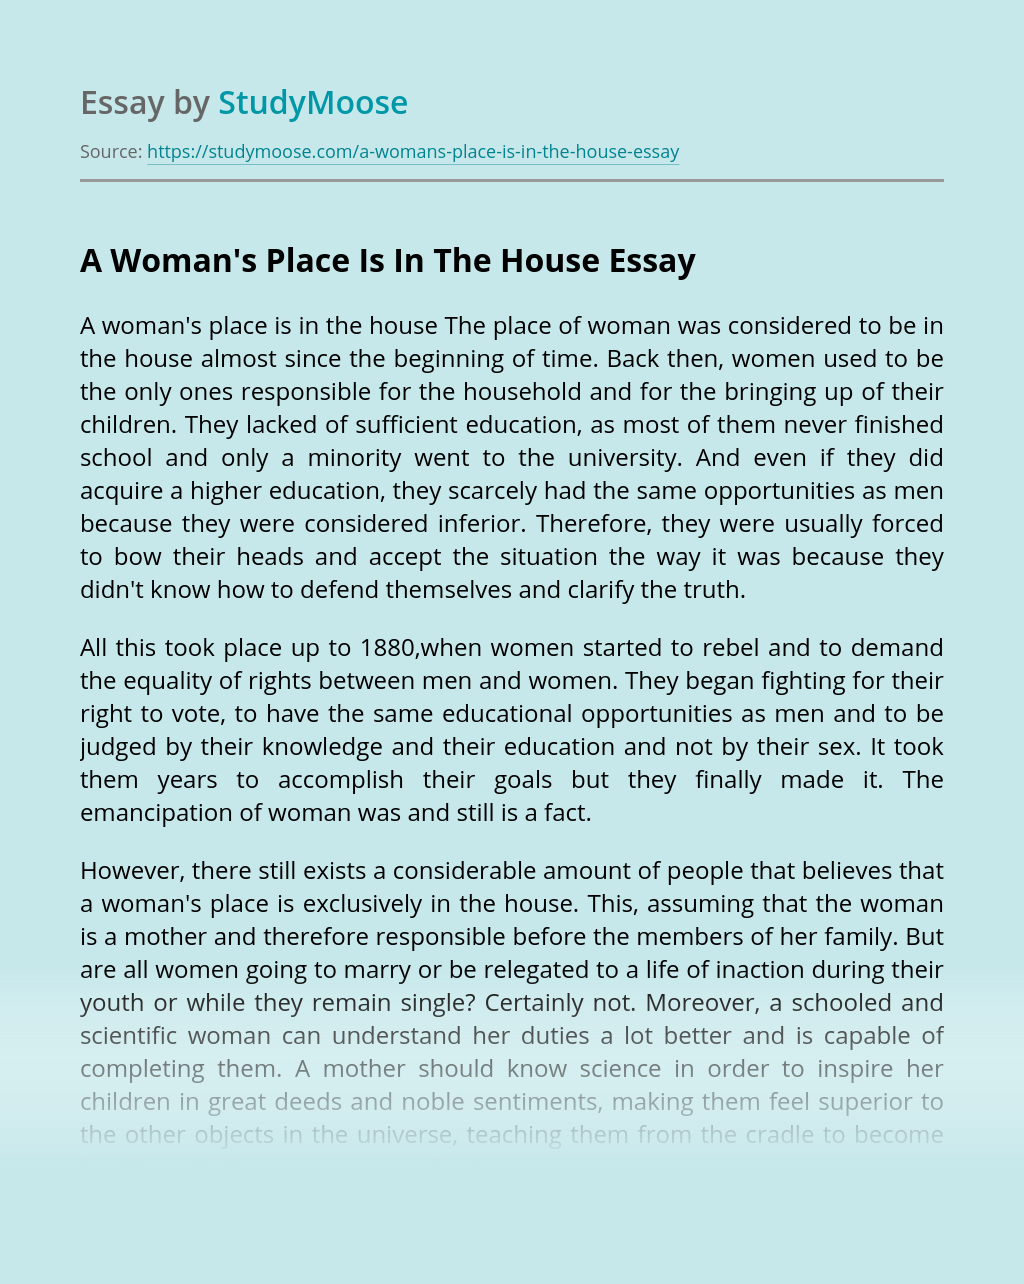 A Woman's Place Is In The House